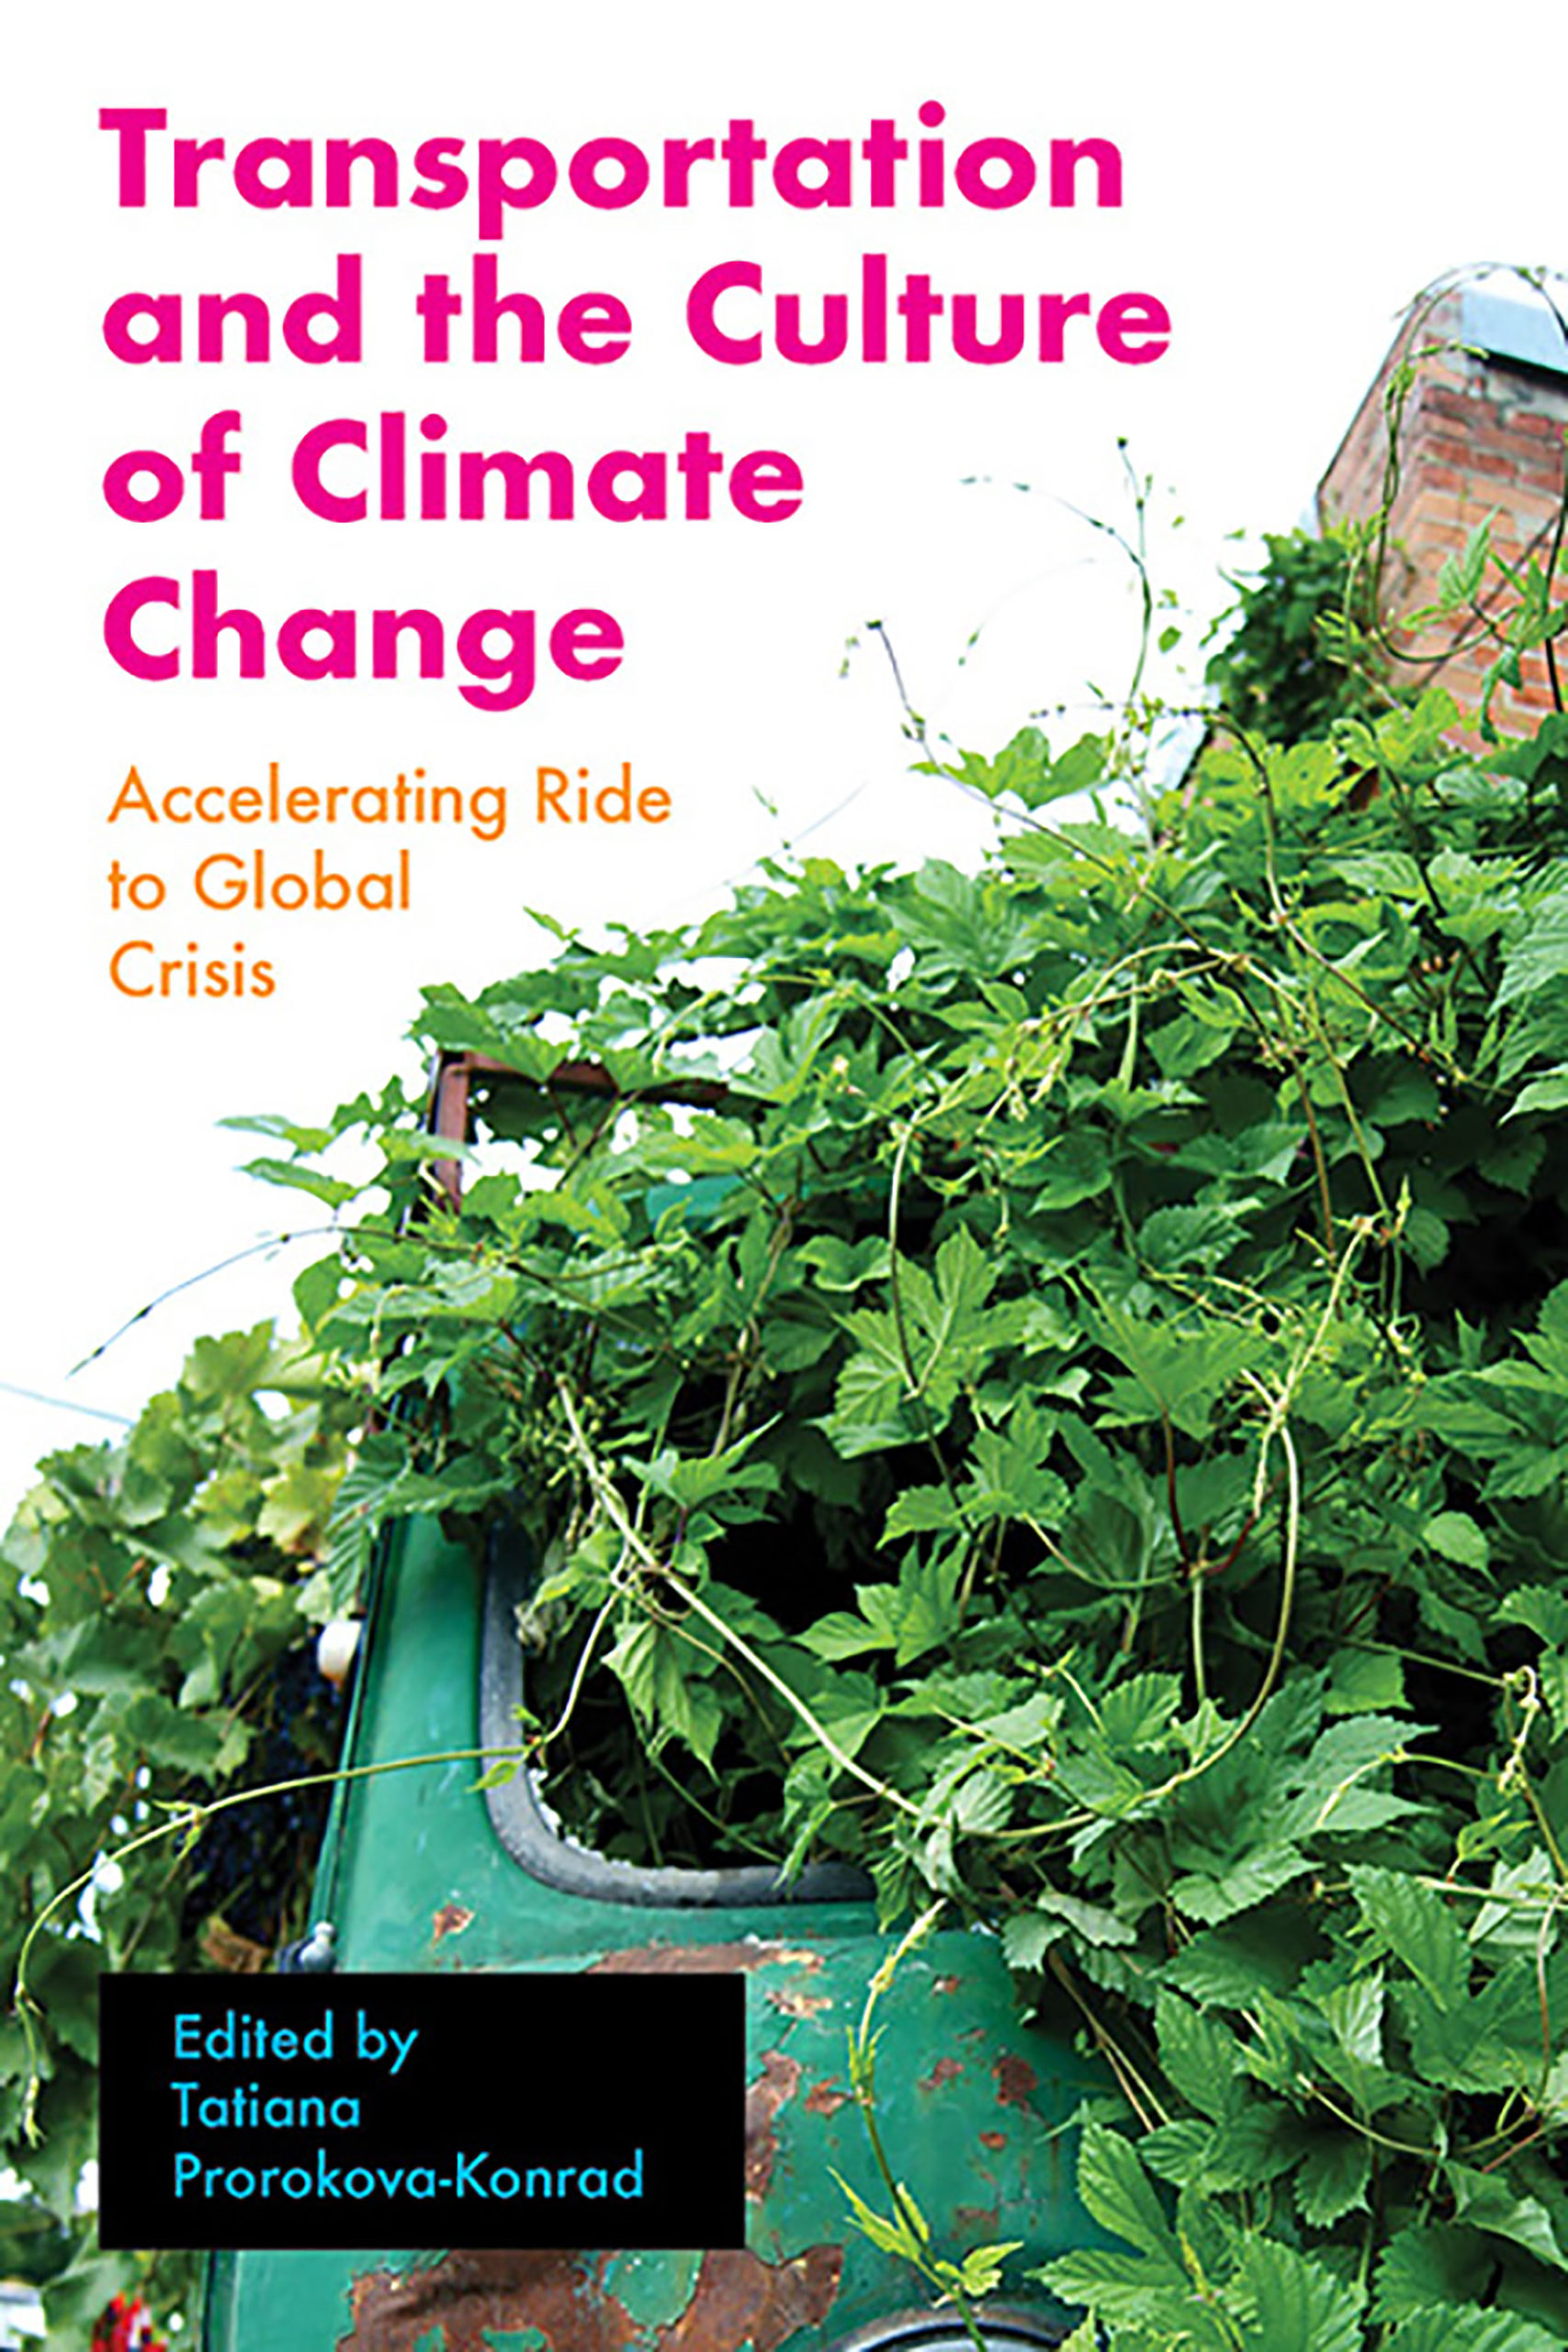 Cover of Transportation and the Culture of Climate Change, weeds overgrow a rusty chassis